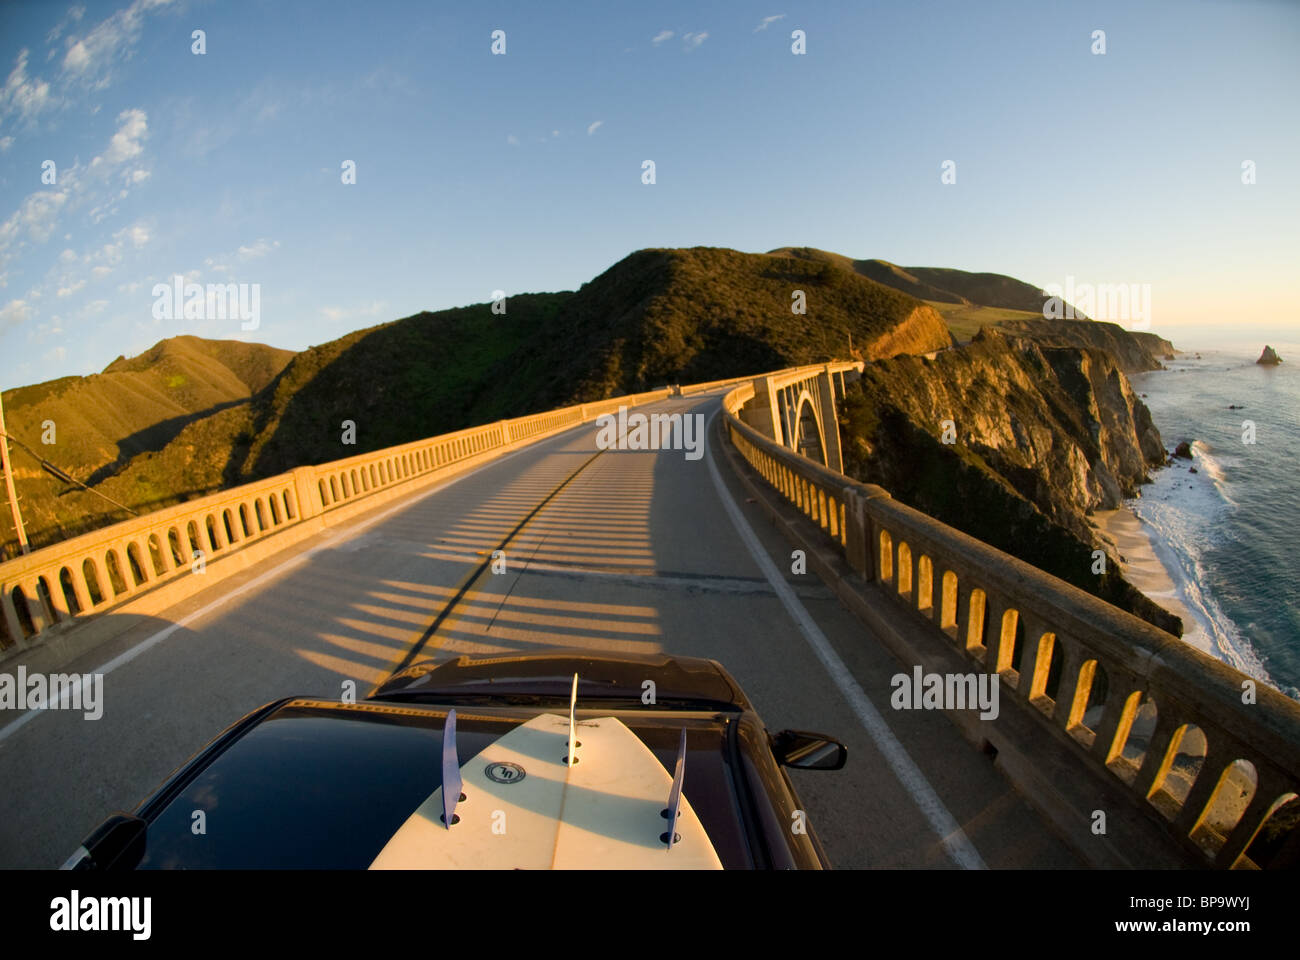 A car with a surfboard on top traveling over the Bixby Creek Bridge, on Highway 1 in Big Sur, California, USA. - Stock Image